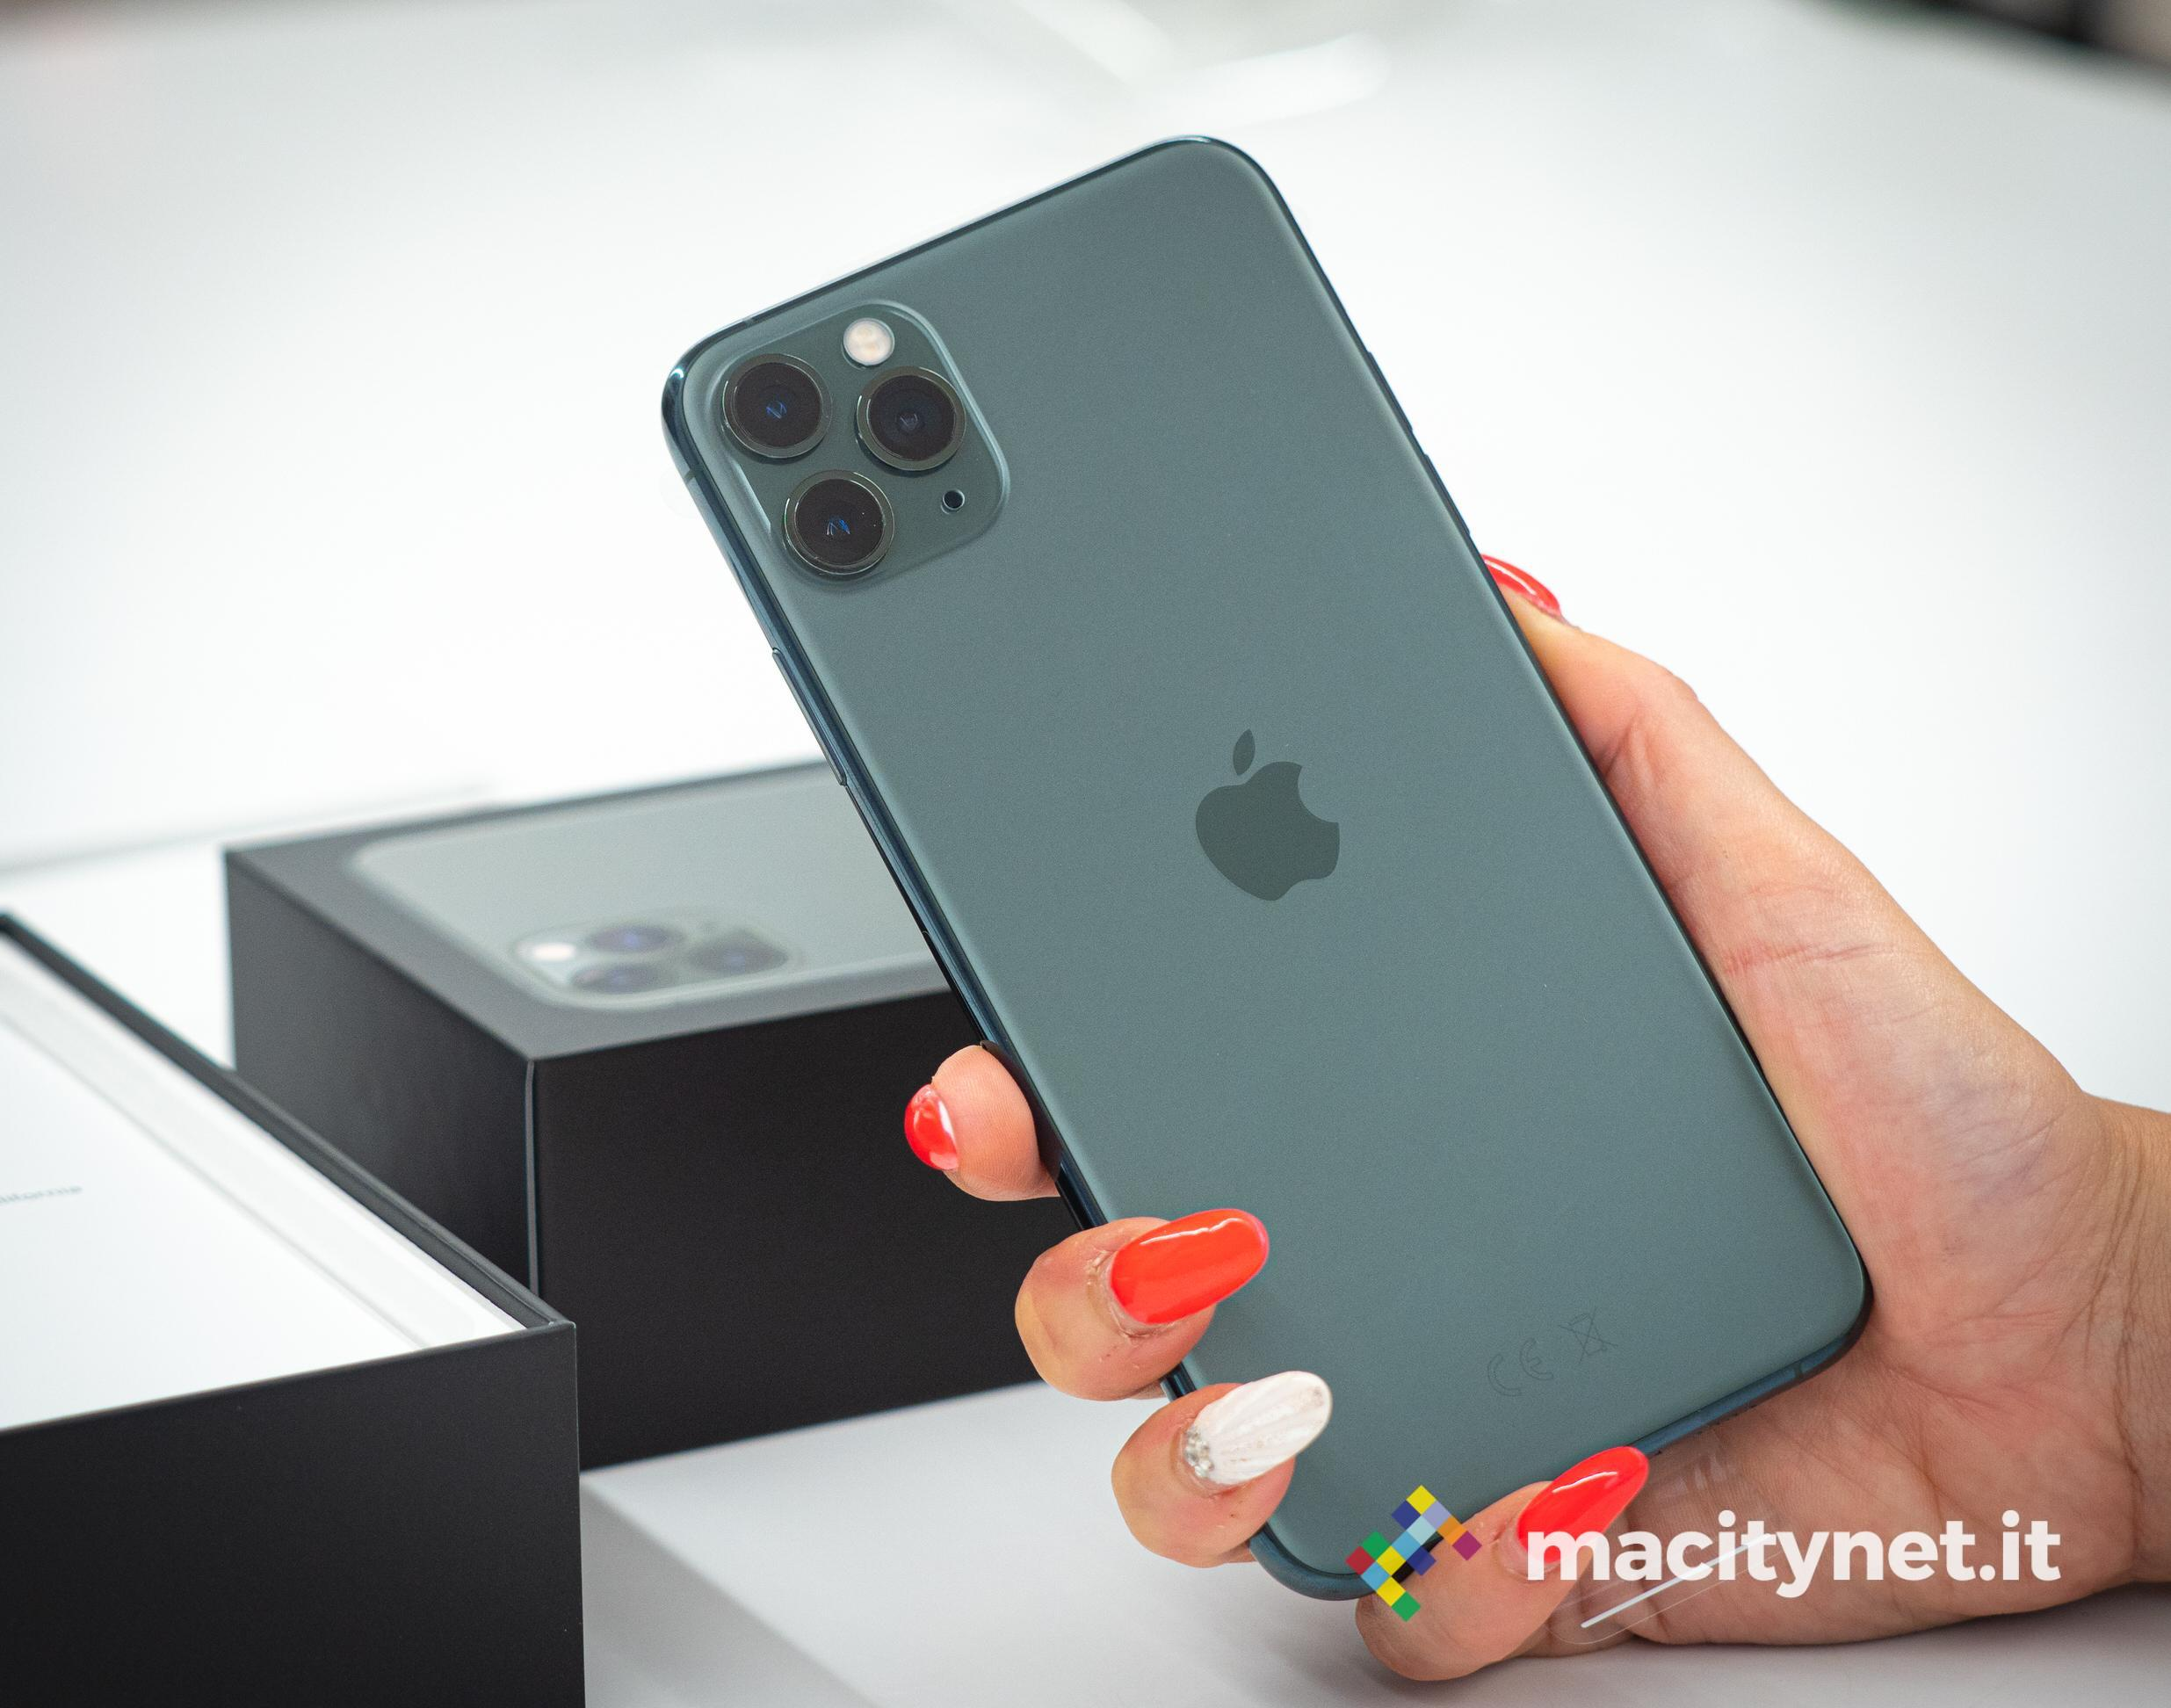 Unboxing e maxi confronto di iPhone 11 [Red], iPhone 11 Pro e Max italiani